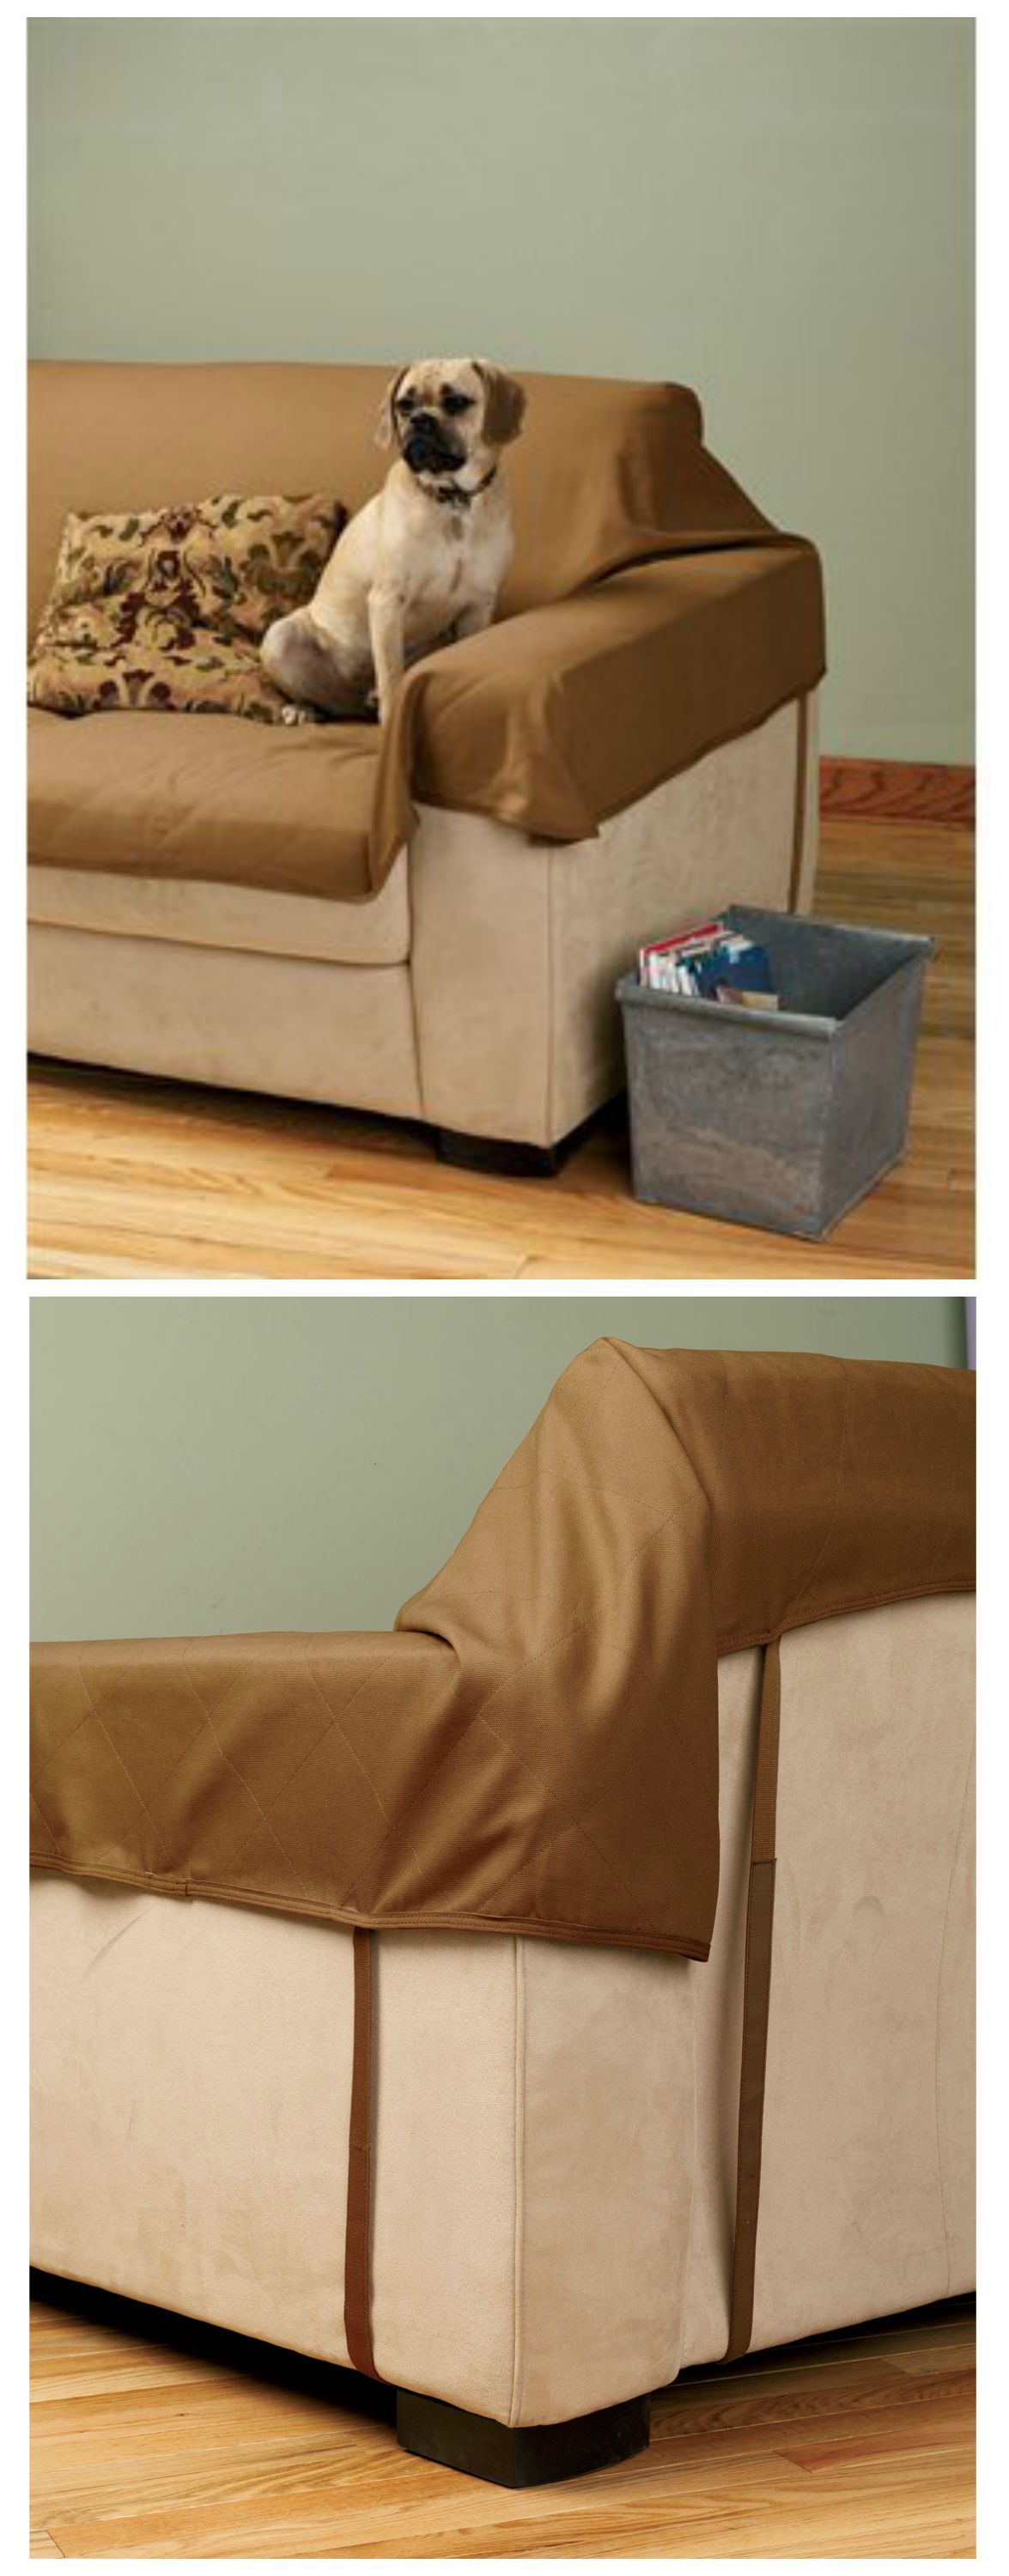 Our Fire Hose Furniture Saver is the sofa cover that keeps your